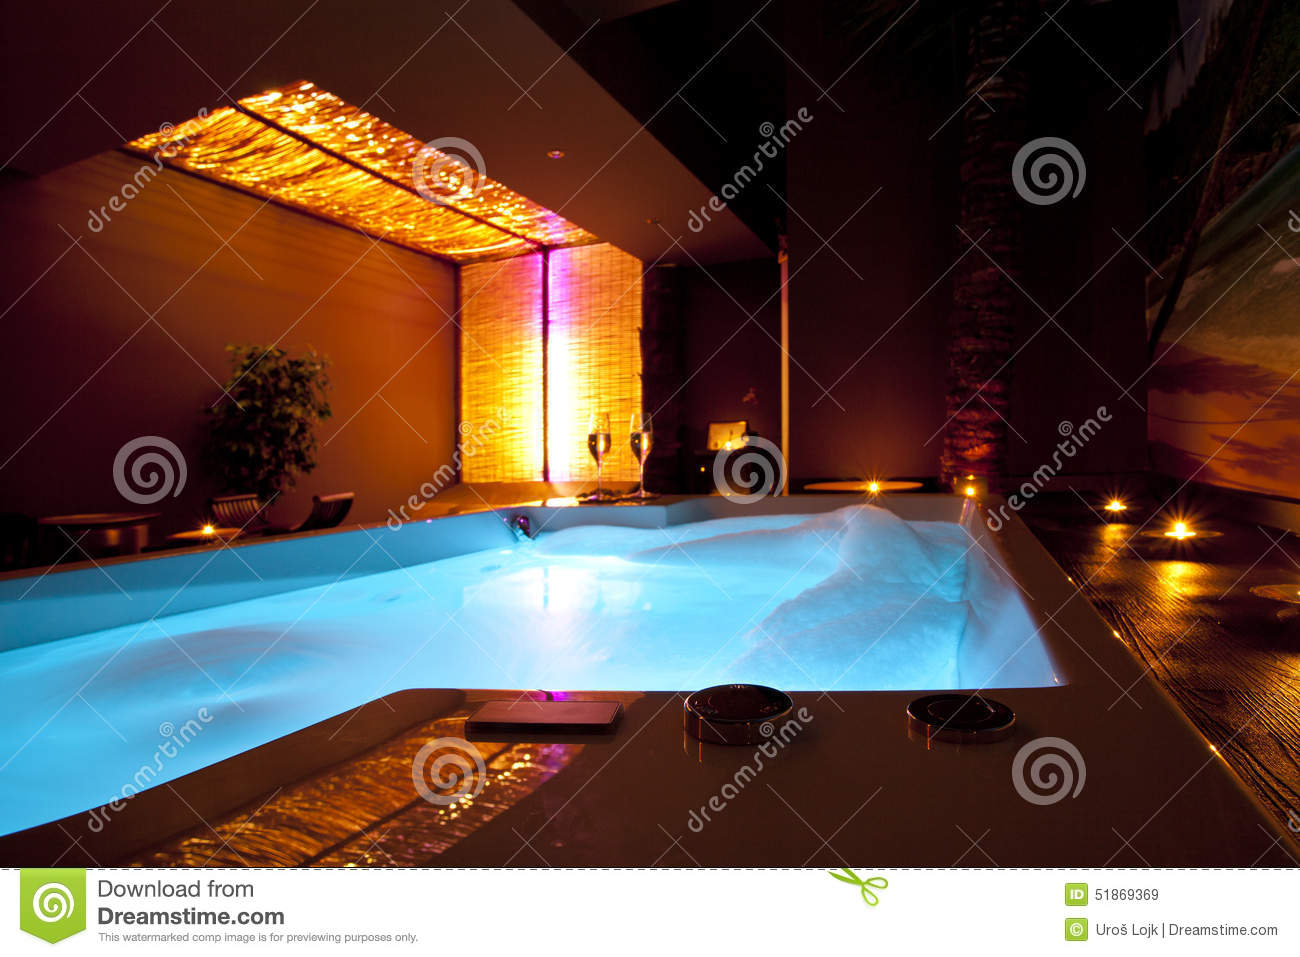 Romantic Golden Foam SPA Bath Stock Image - Image of city, jacuzzi ...